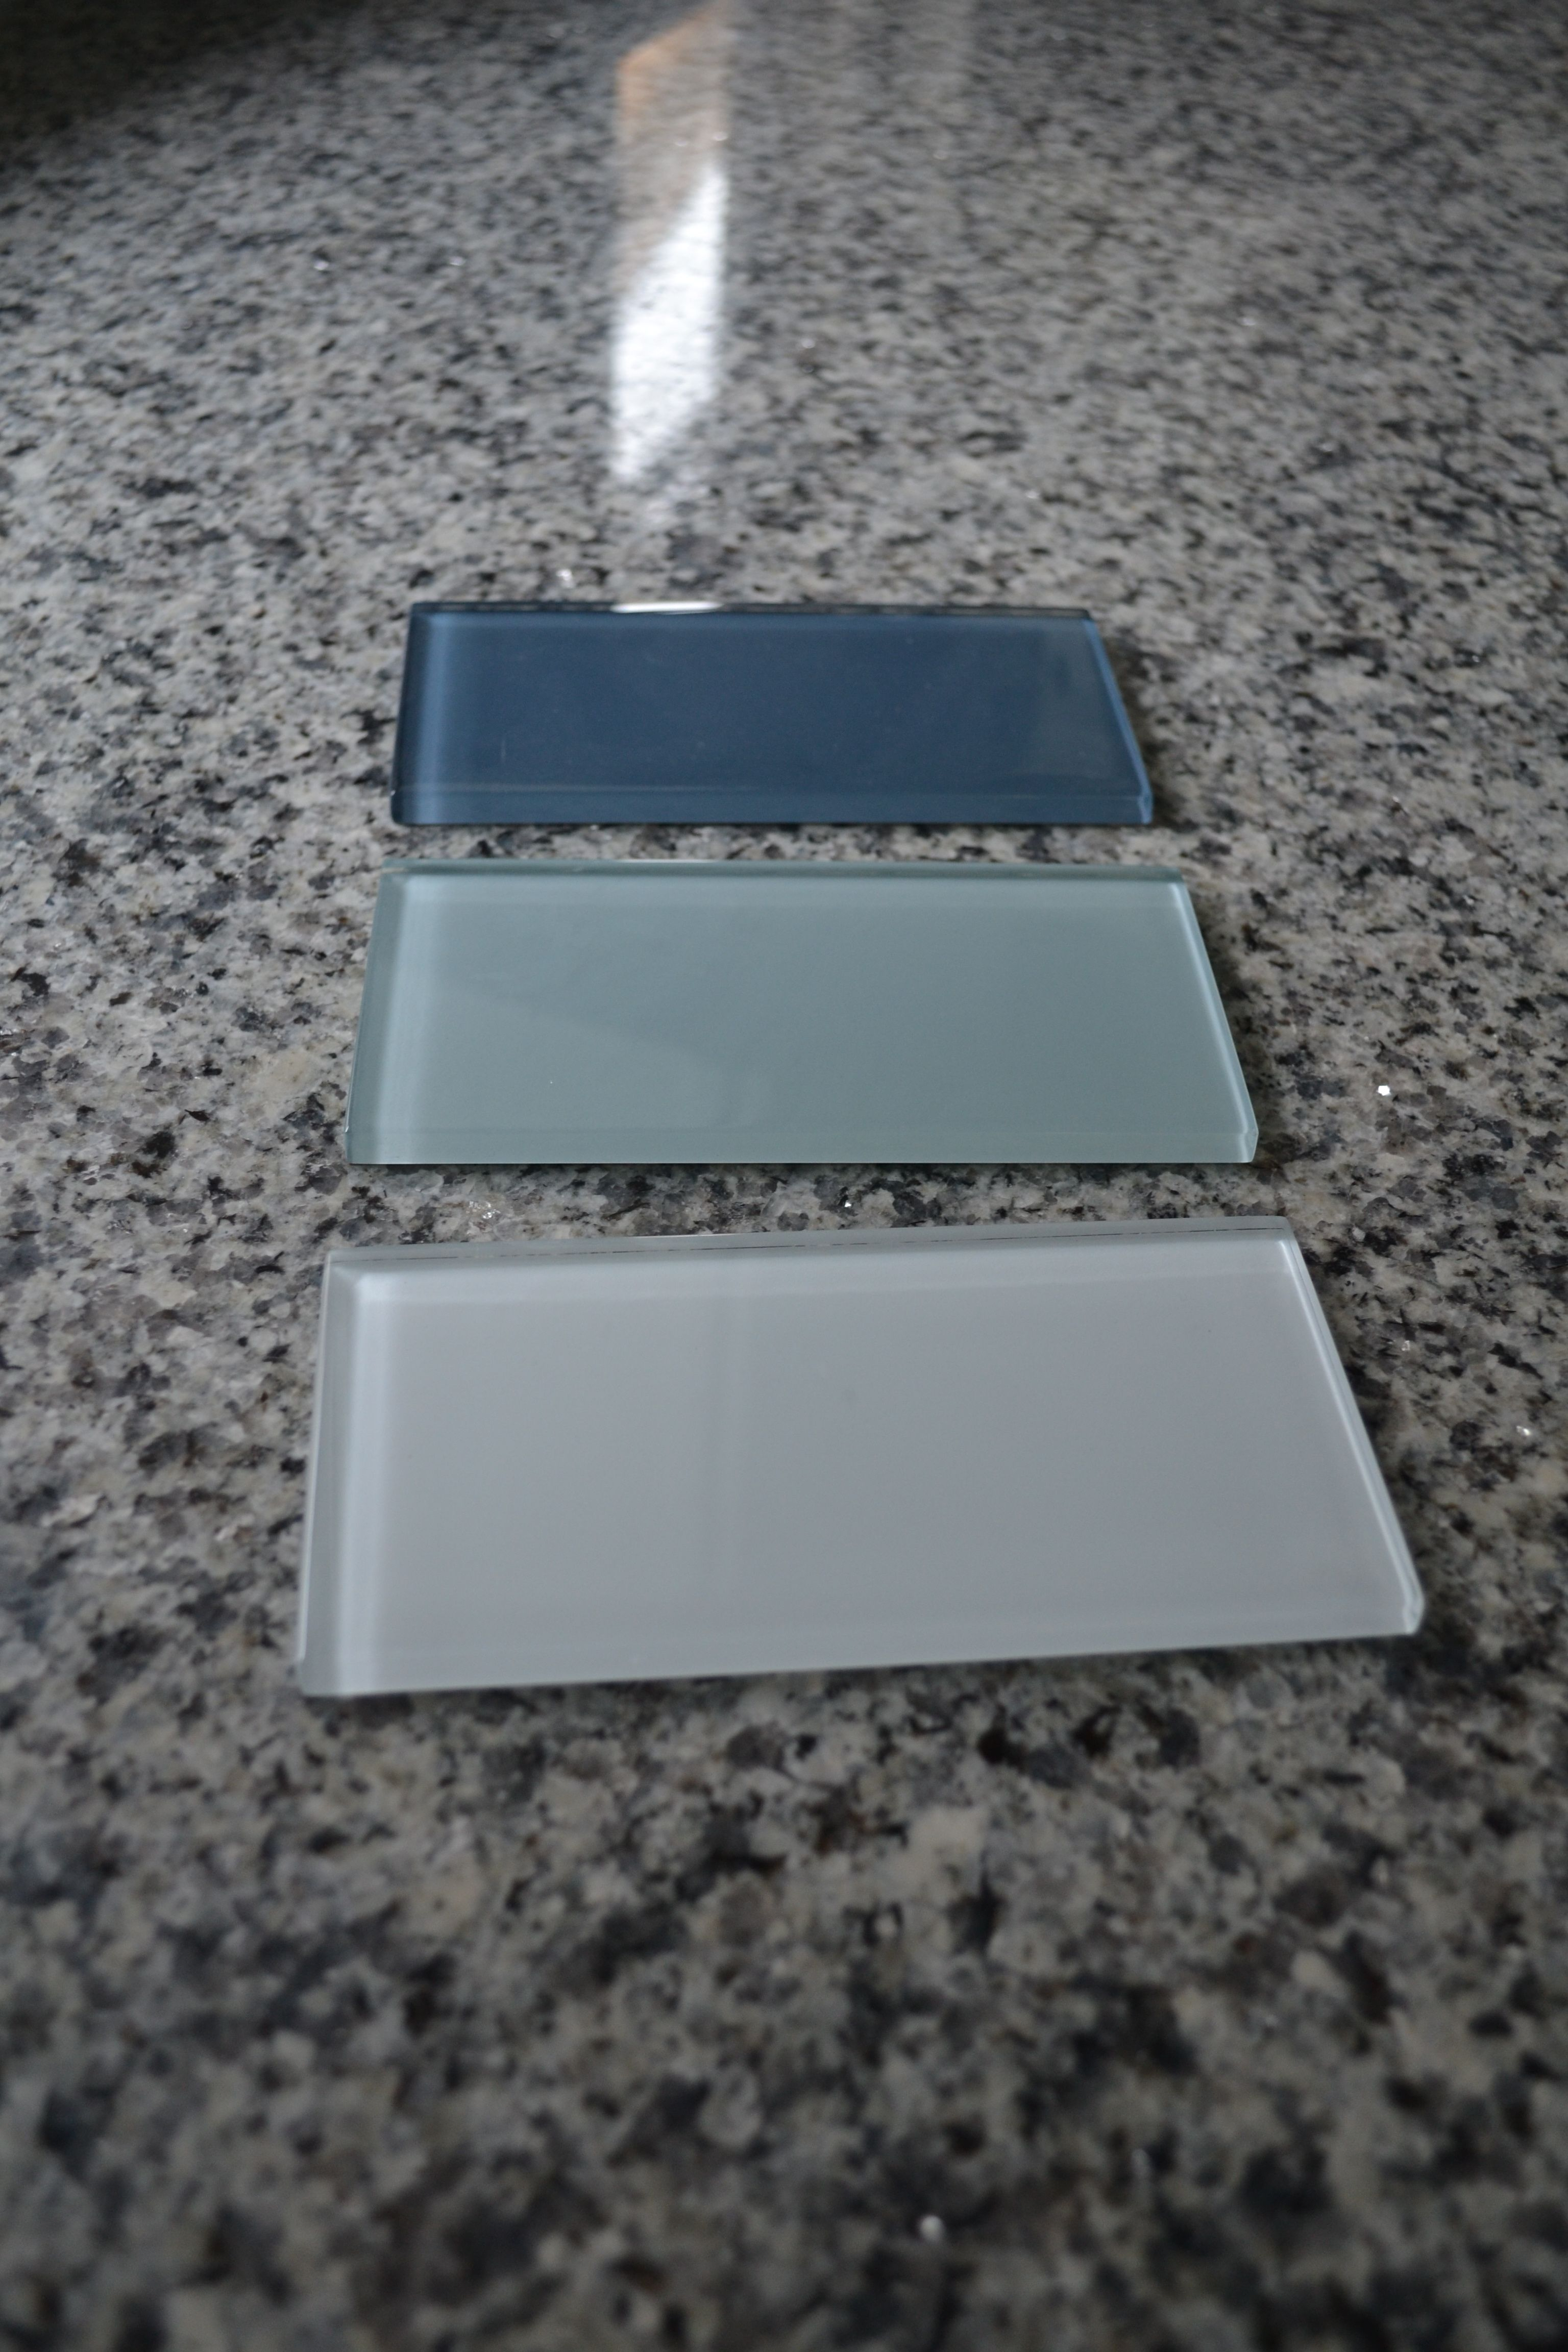 azul platino granite home depot - Google Search | Countertops ...